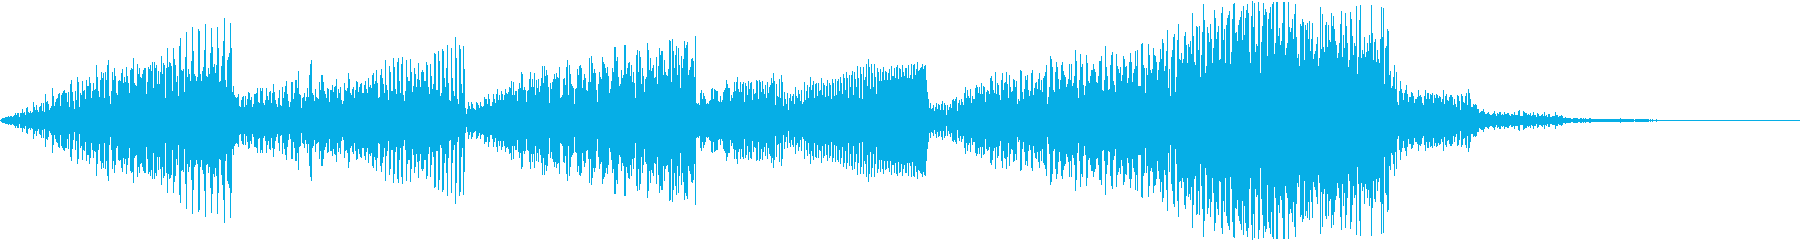 Chic and fine jingle of electronic music's reproduced waveform